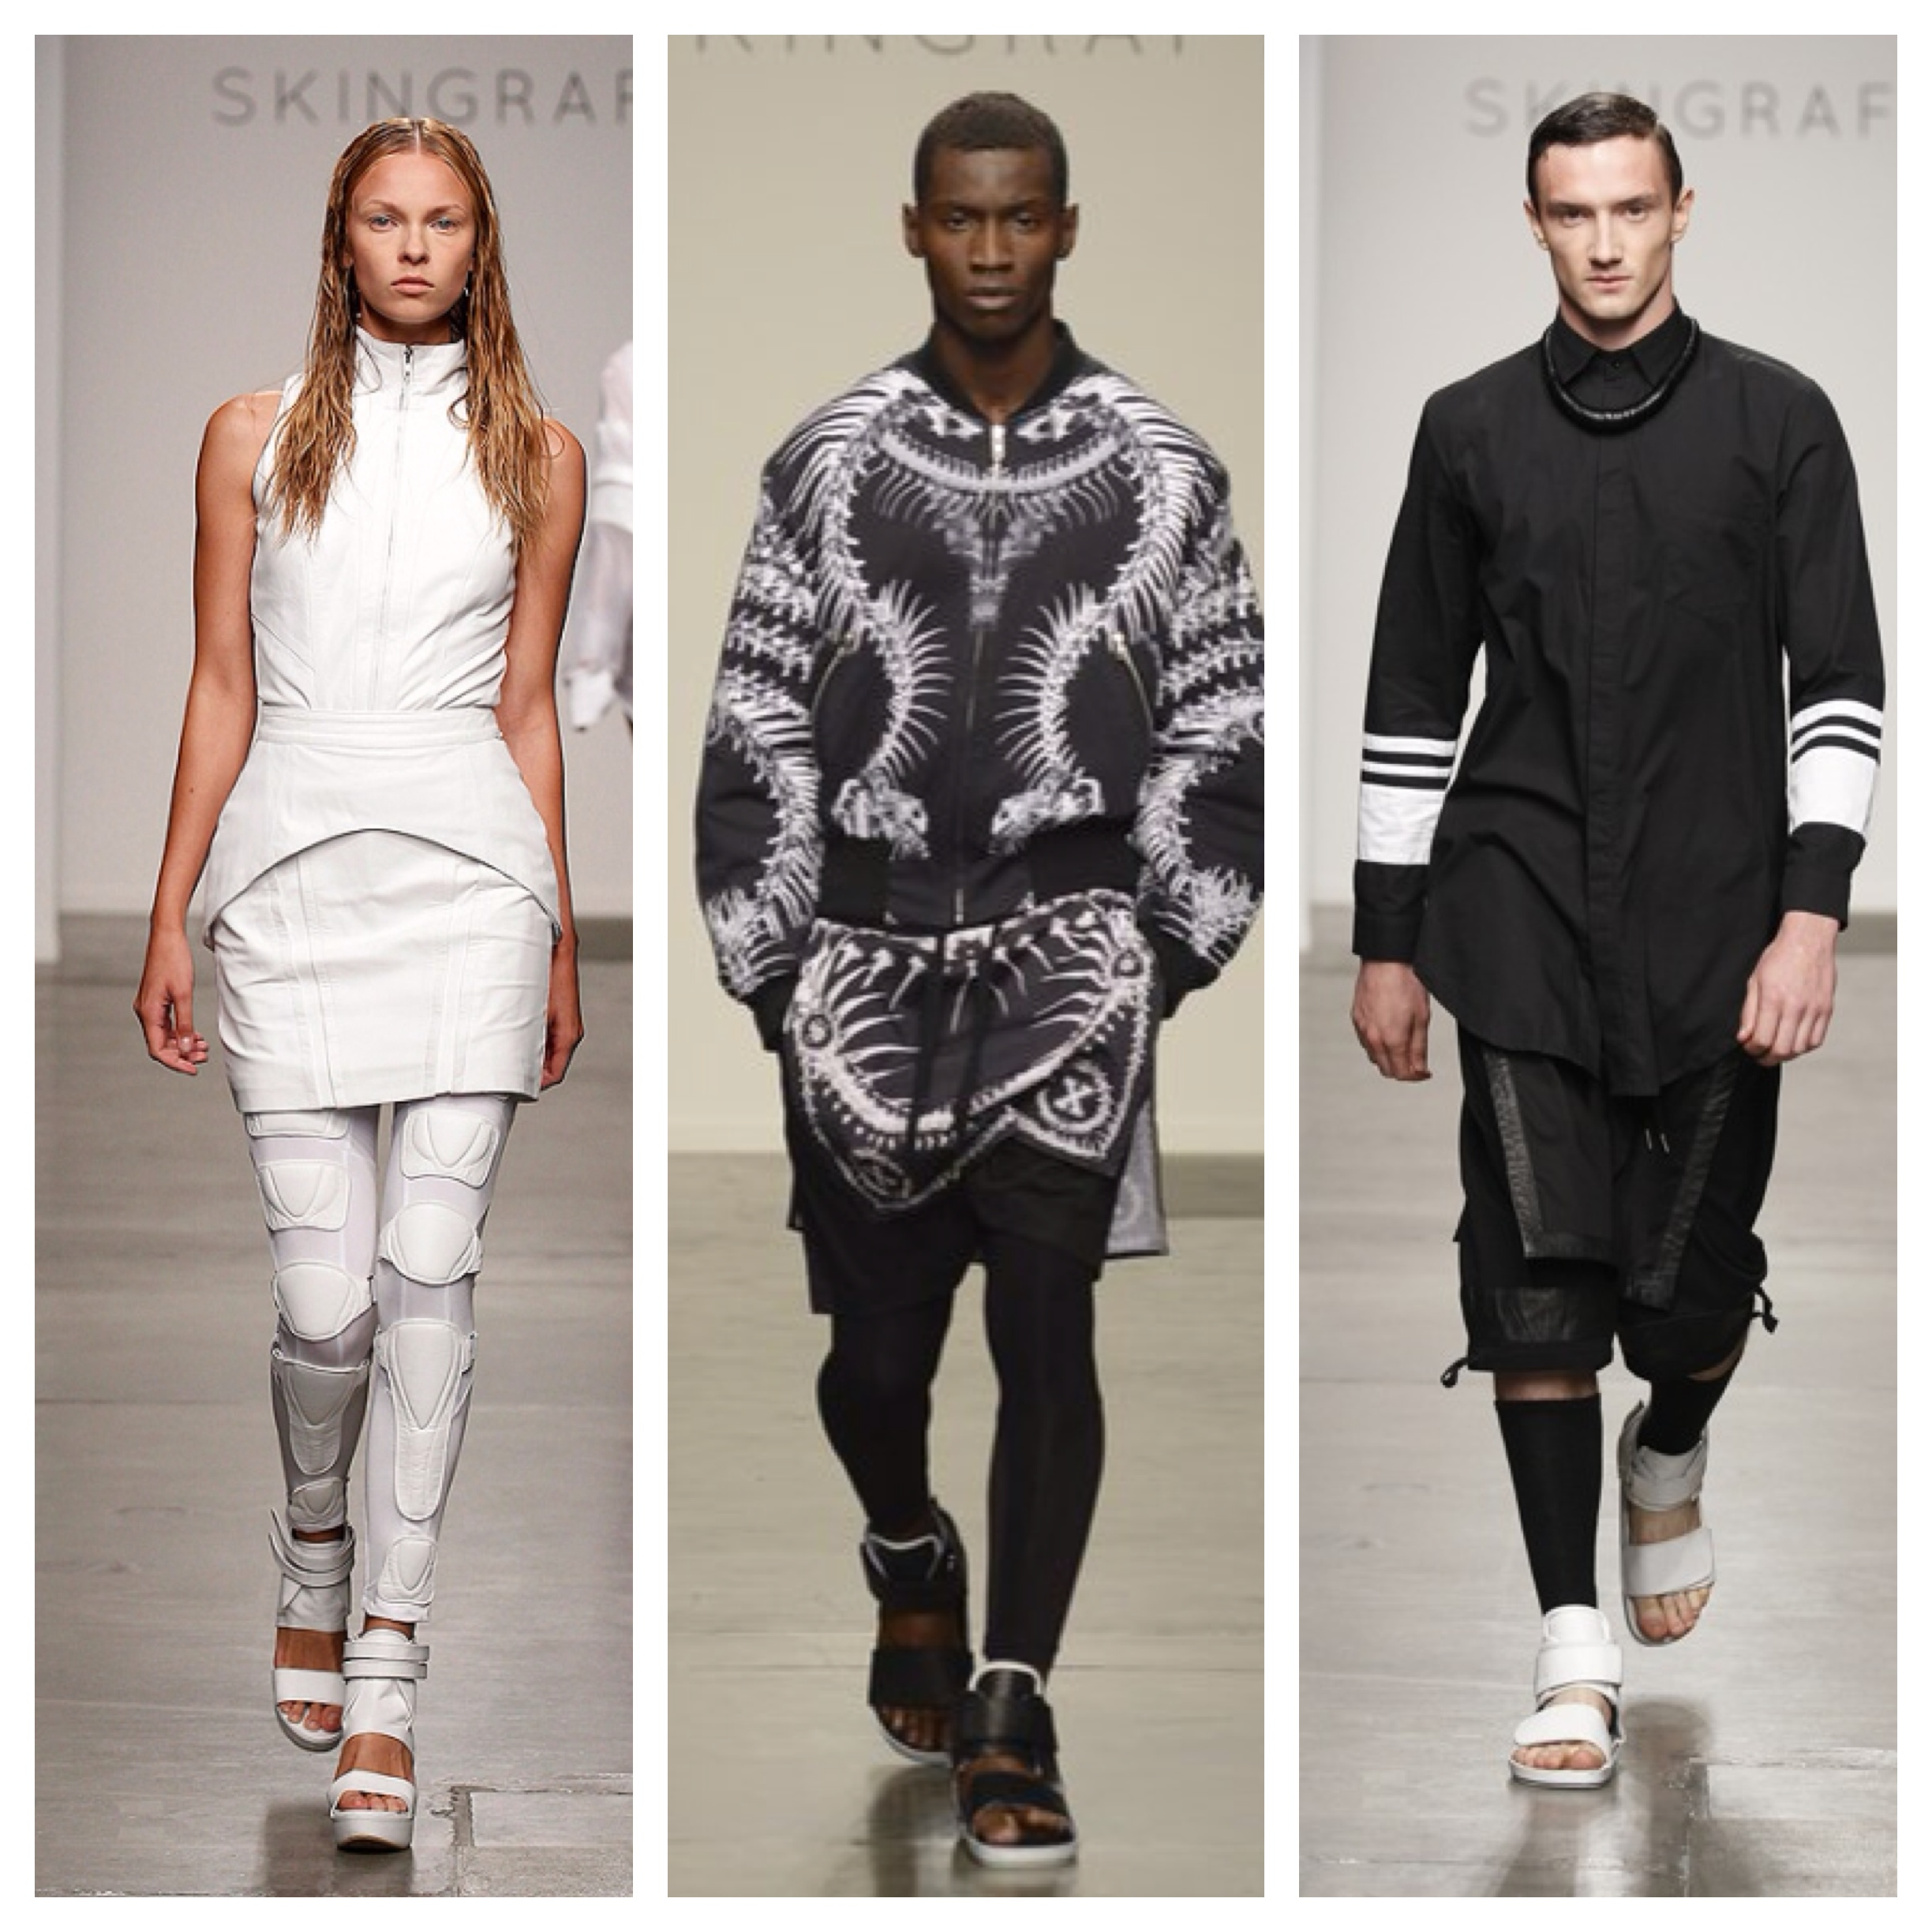 Spring 2014 Fashion Forward Looks from SKINGRAFT at Shop Untitled in     SKINGRAFT Spring 2014